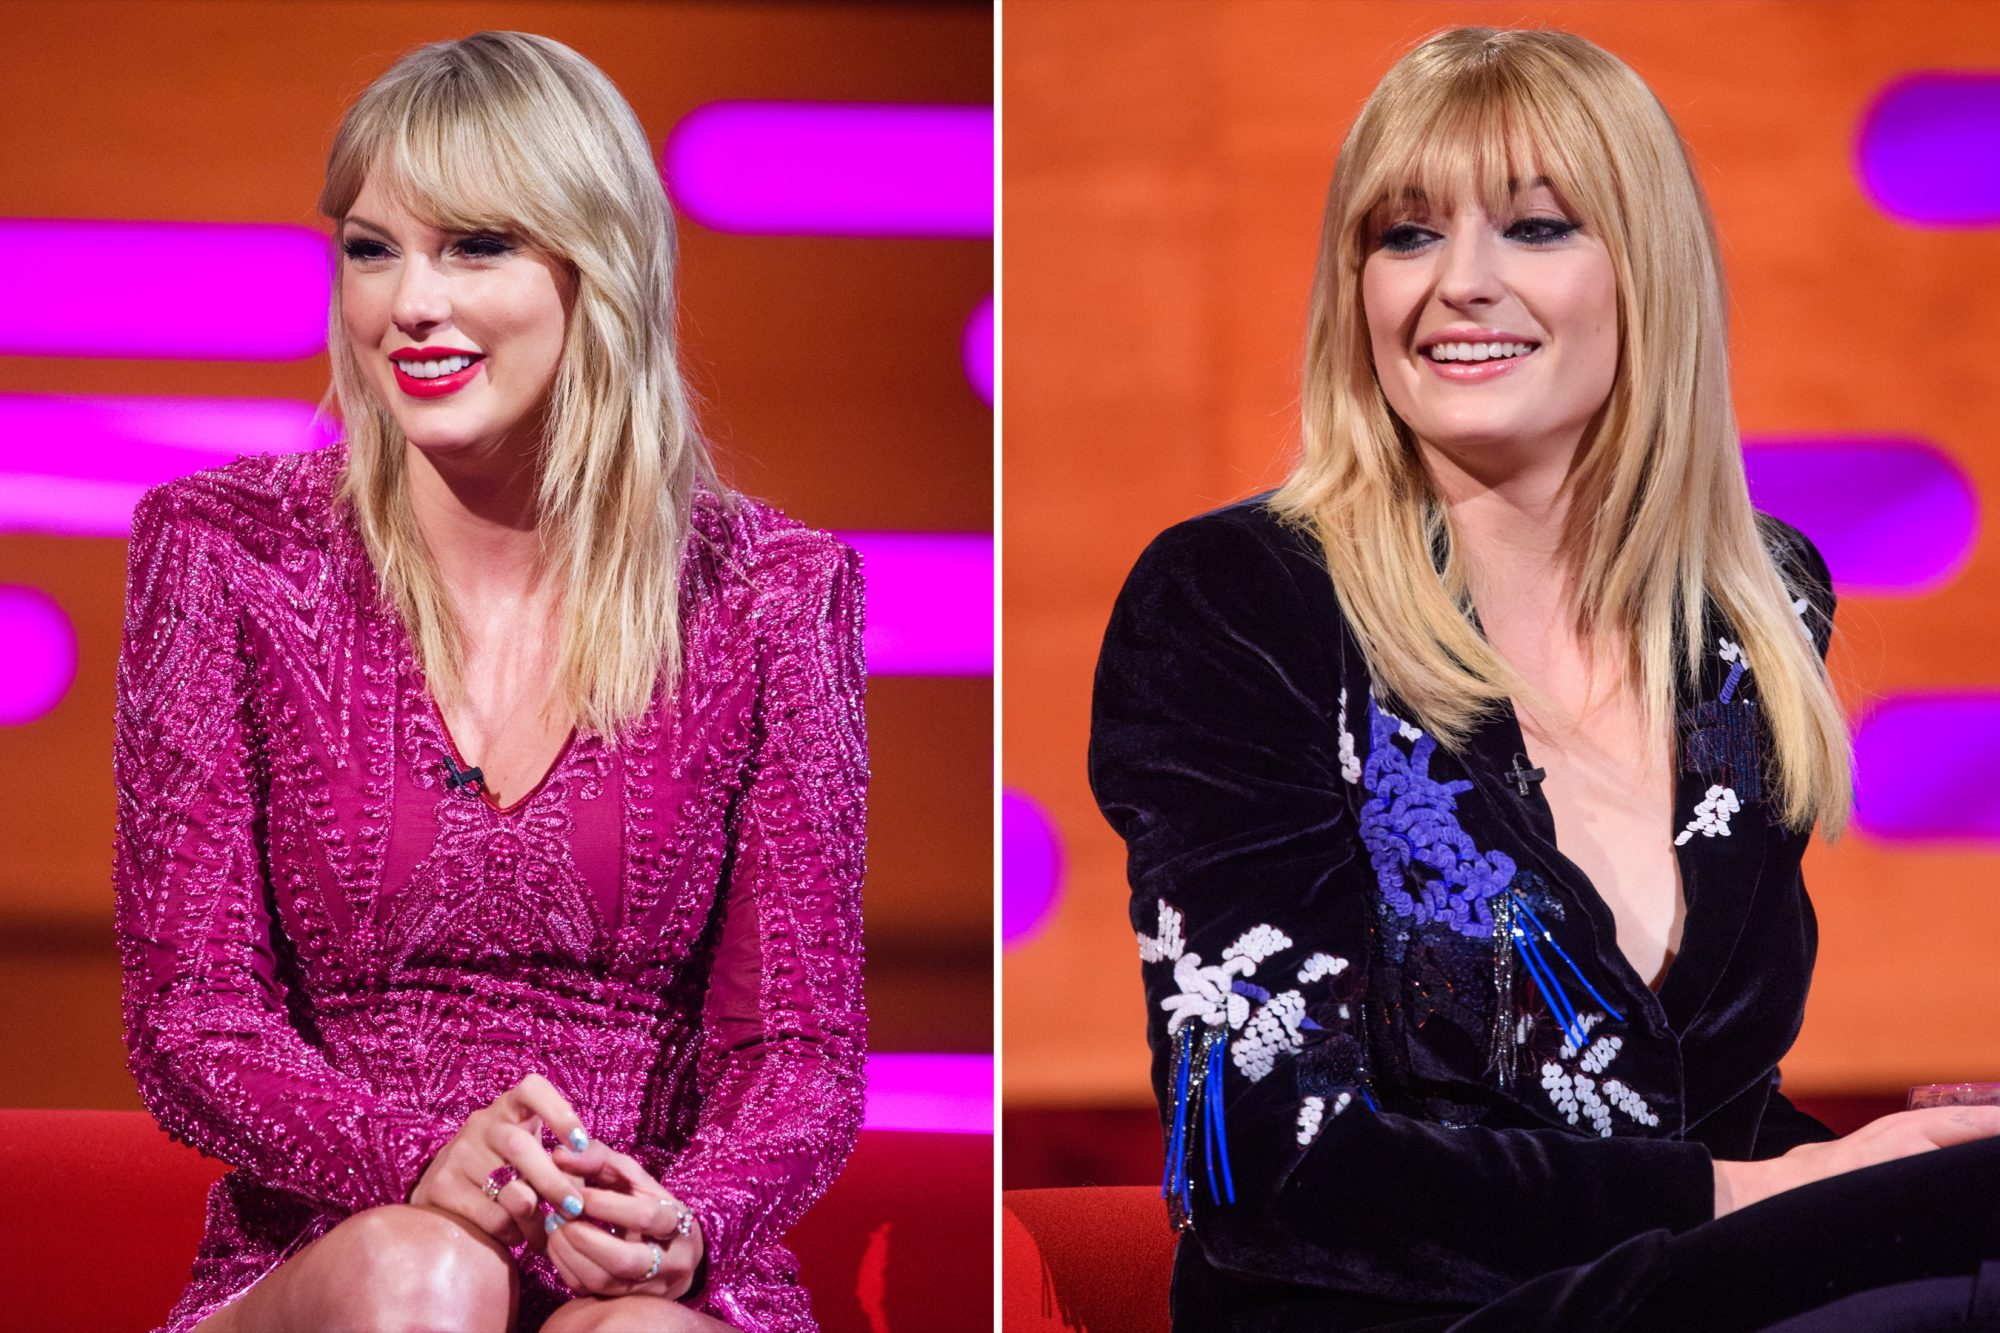 Taylor Swift and Sophie Turner during the filming of the Graham Norton Show